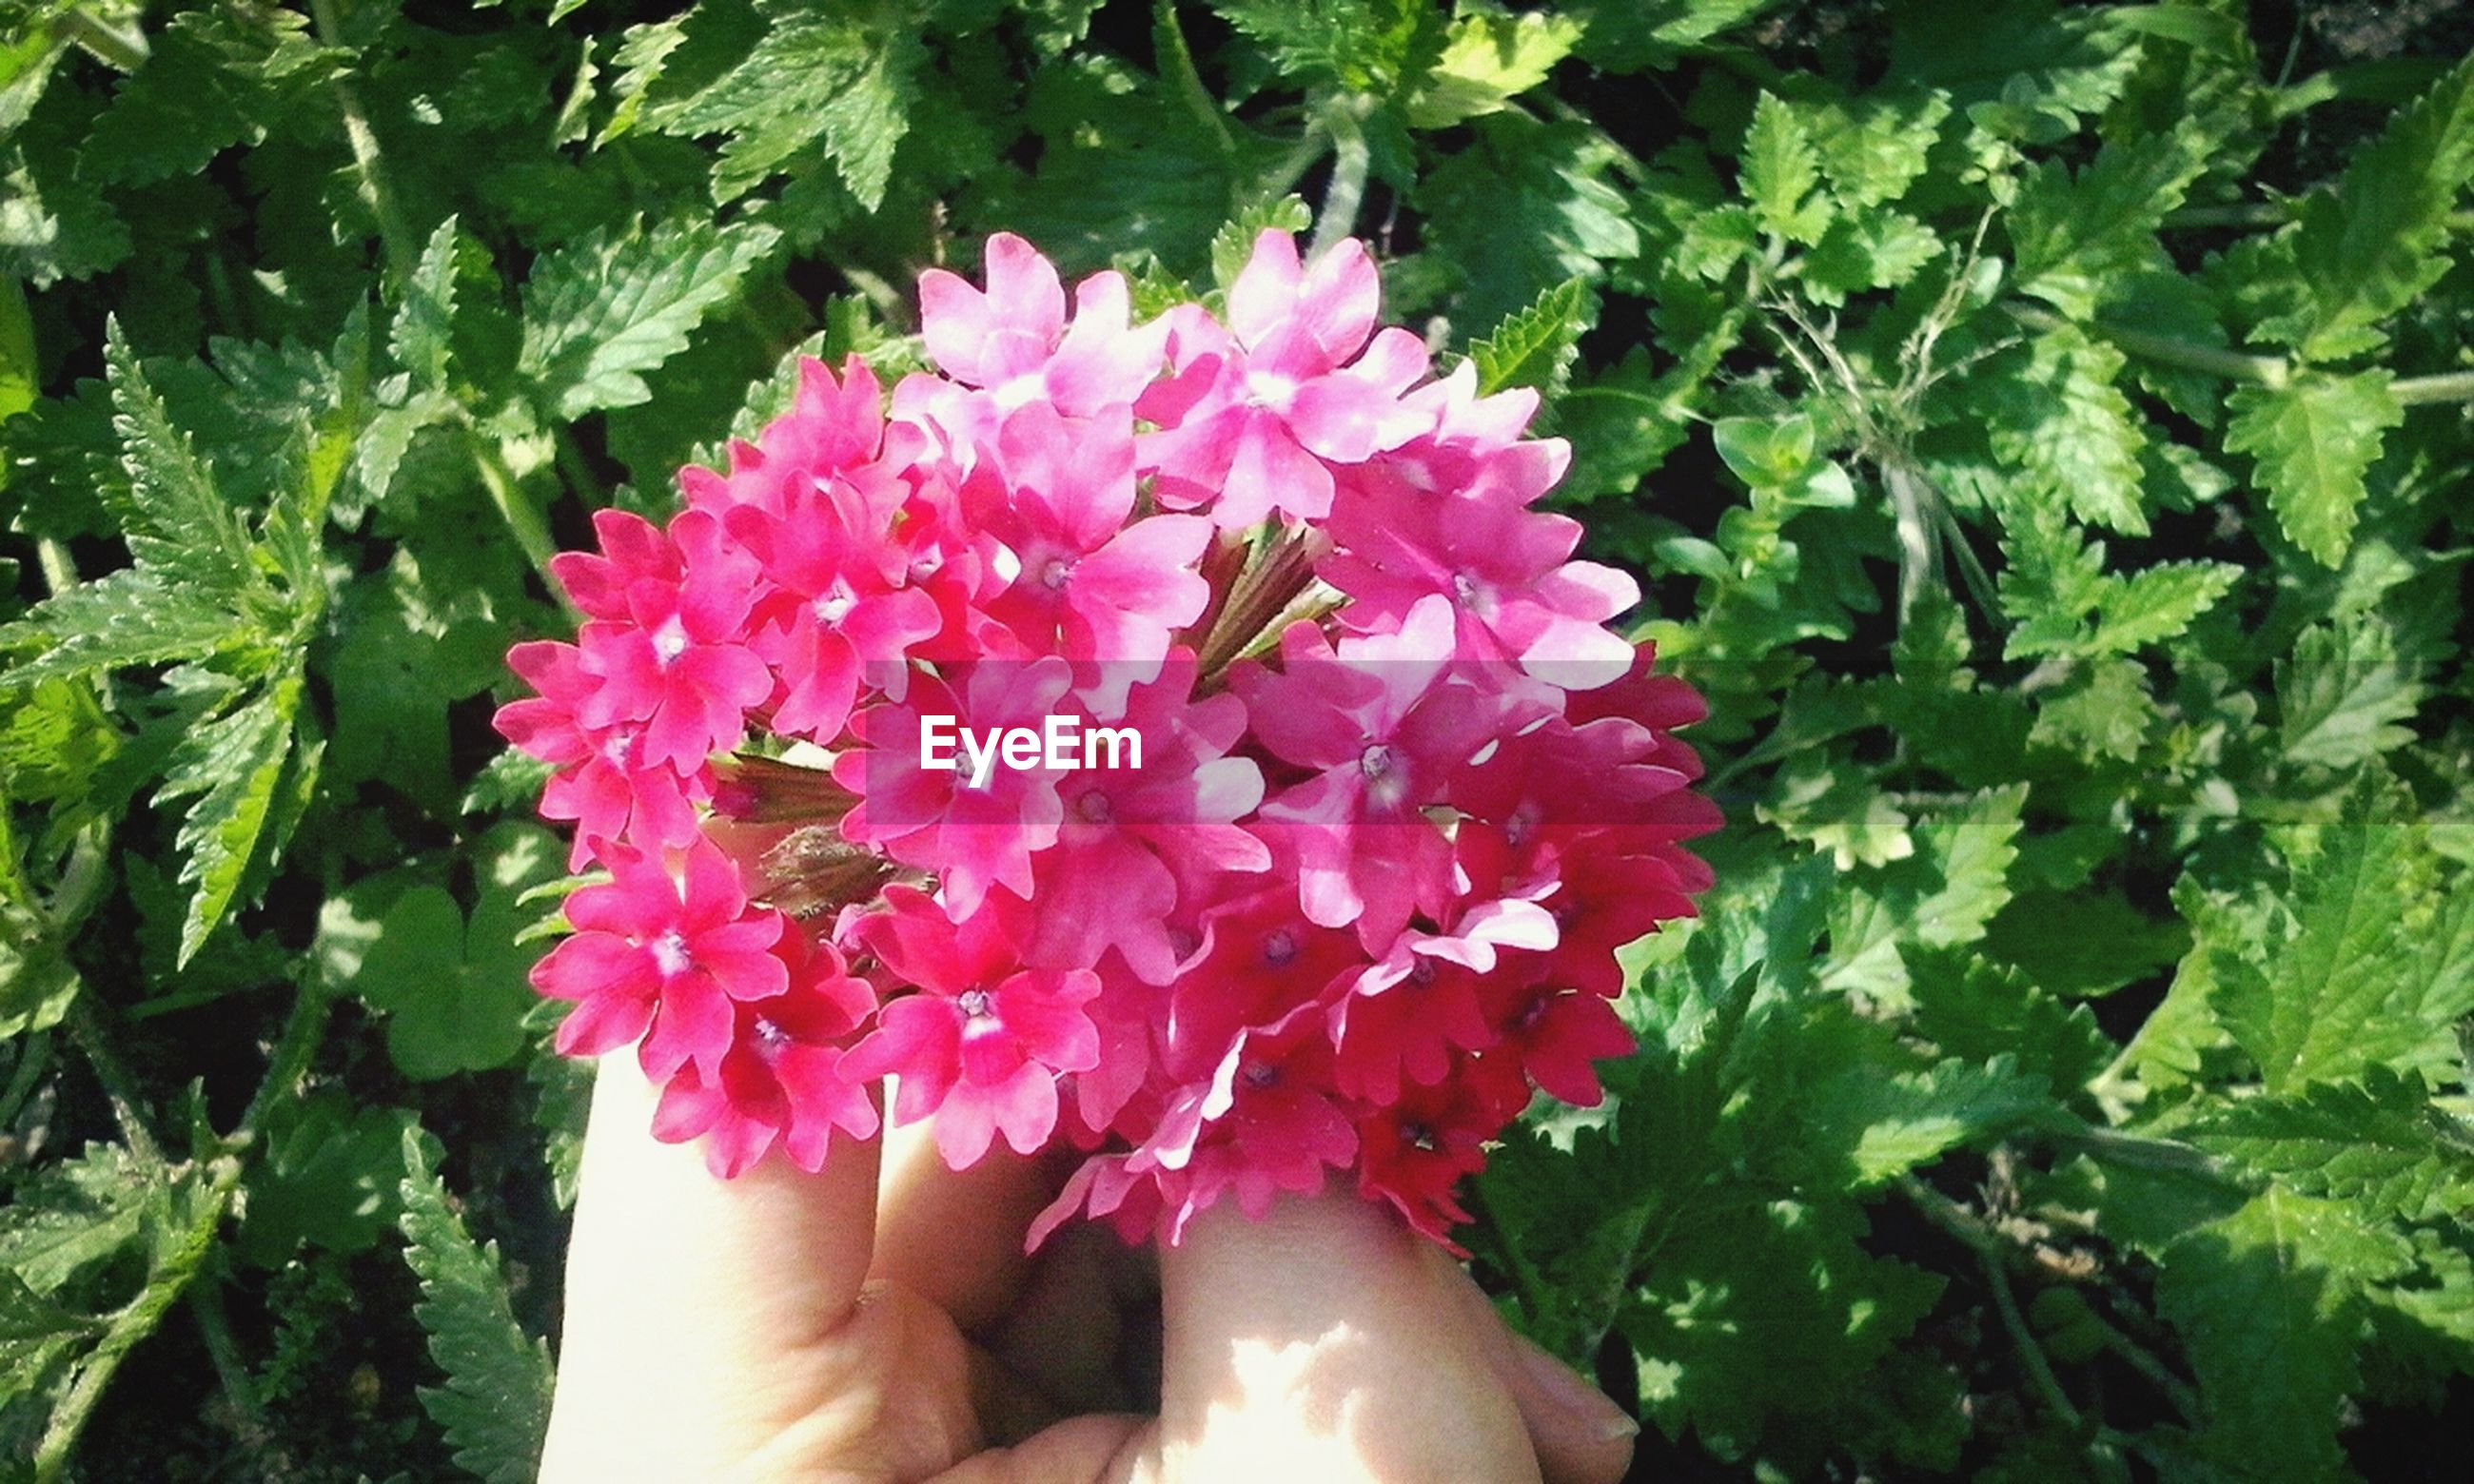 flower, freshness, person, personal perspective, holding, fragility, leaf, growth, lifestyles, part of, petal, leisure activity, plant, pink color, unrecognizable person, beauty in nature, green color